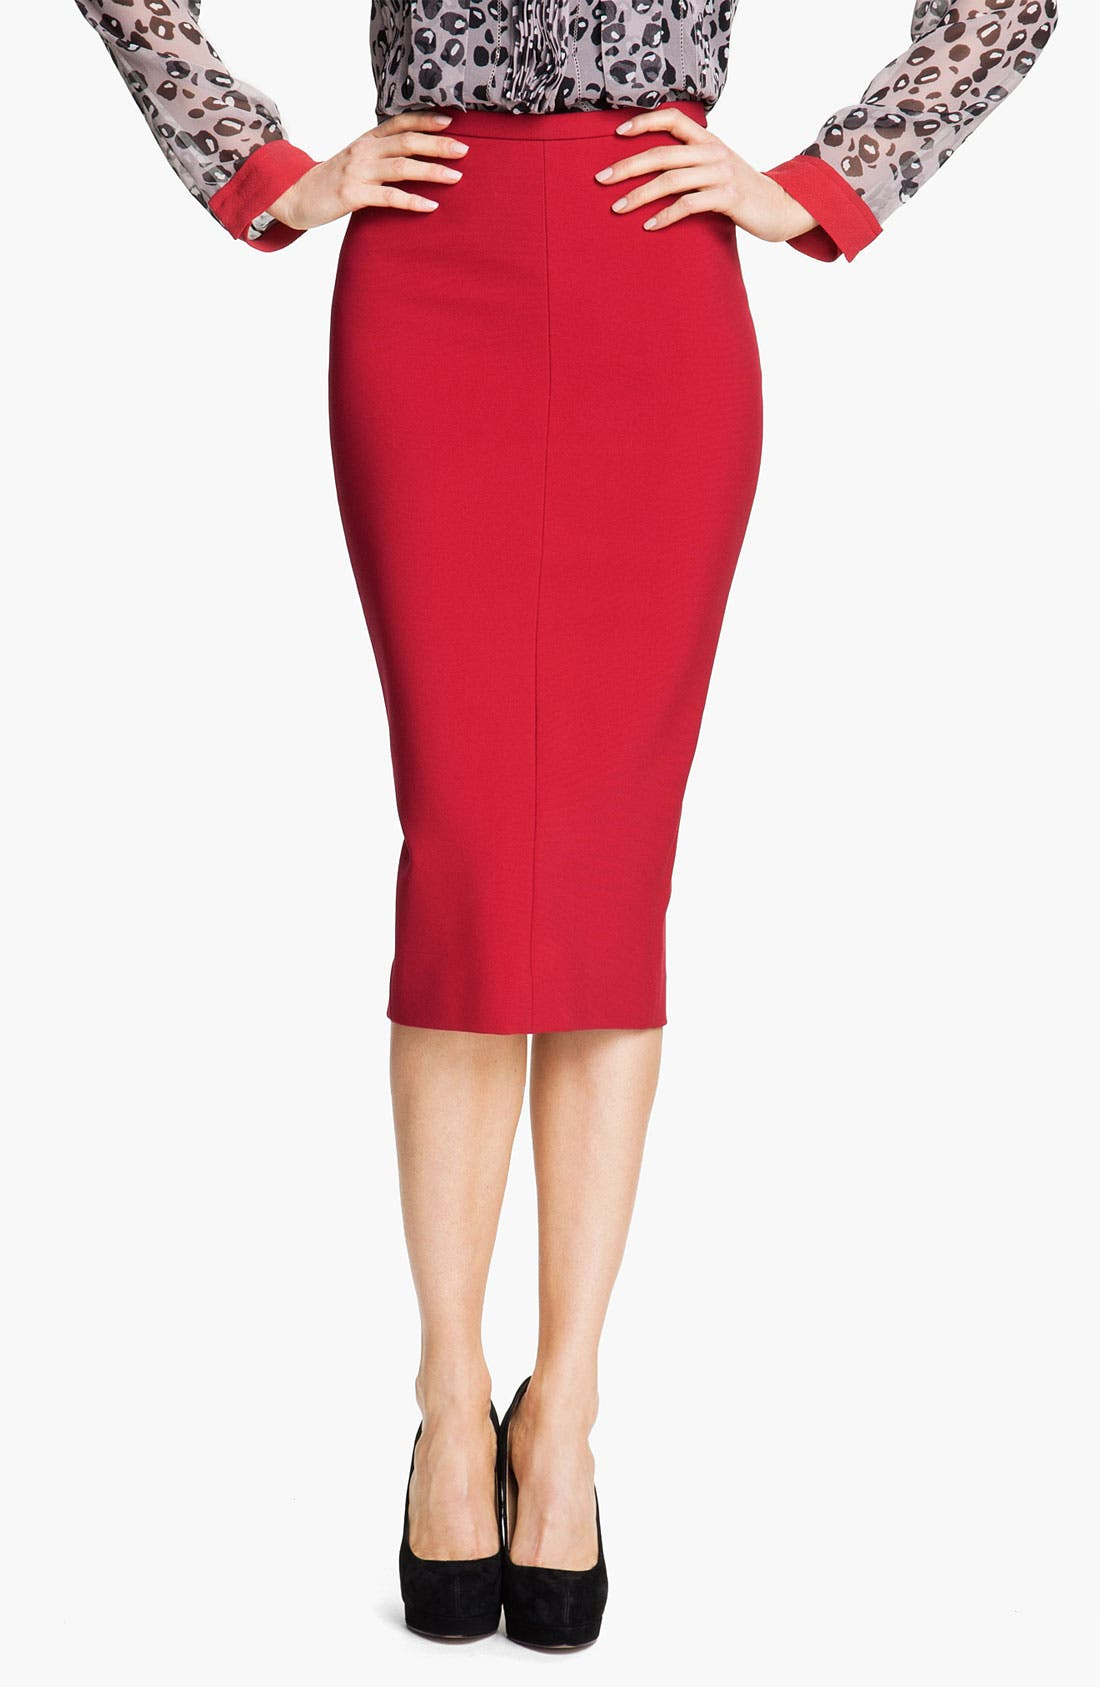 Alternate Image 1 Selected - Diane von Furstenberg 'Samara' Pencil Skirt